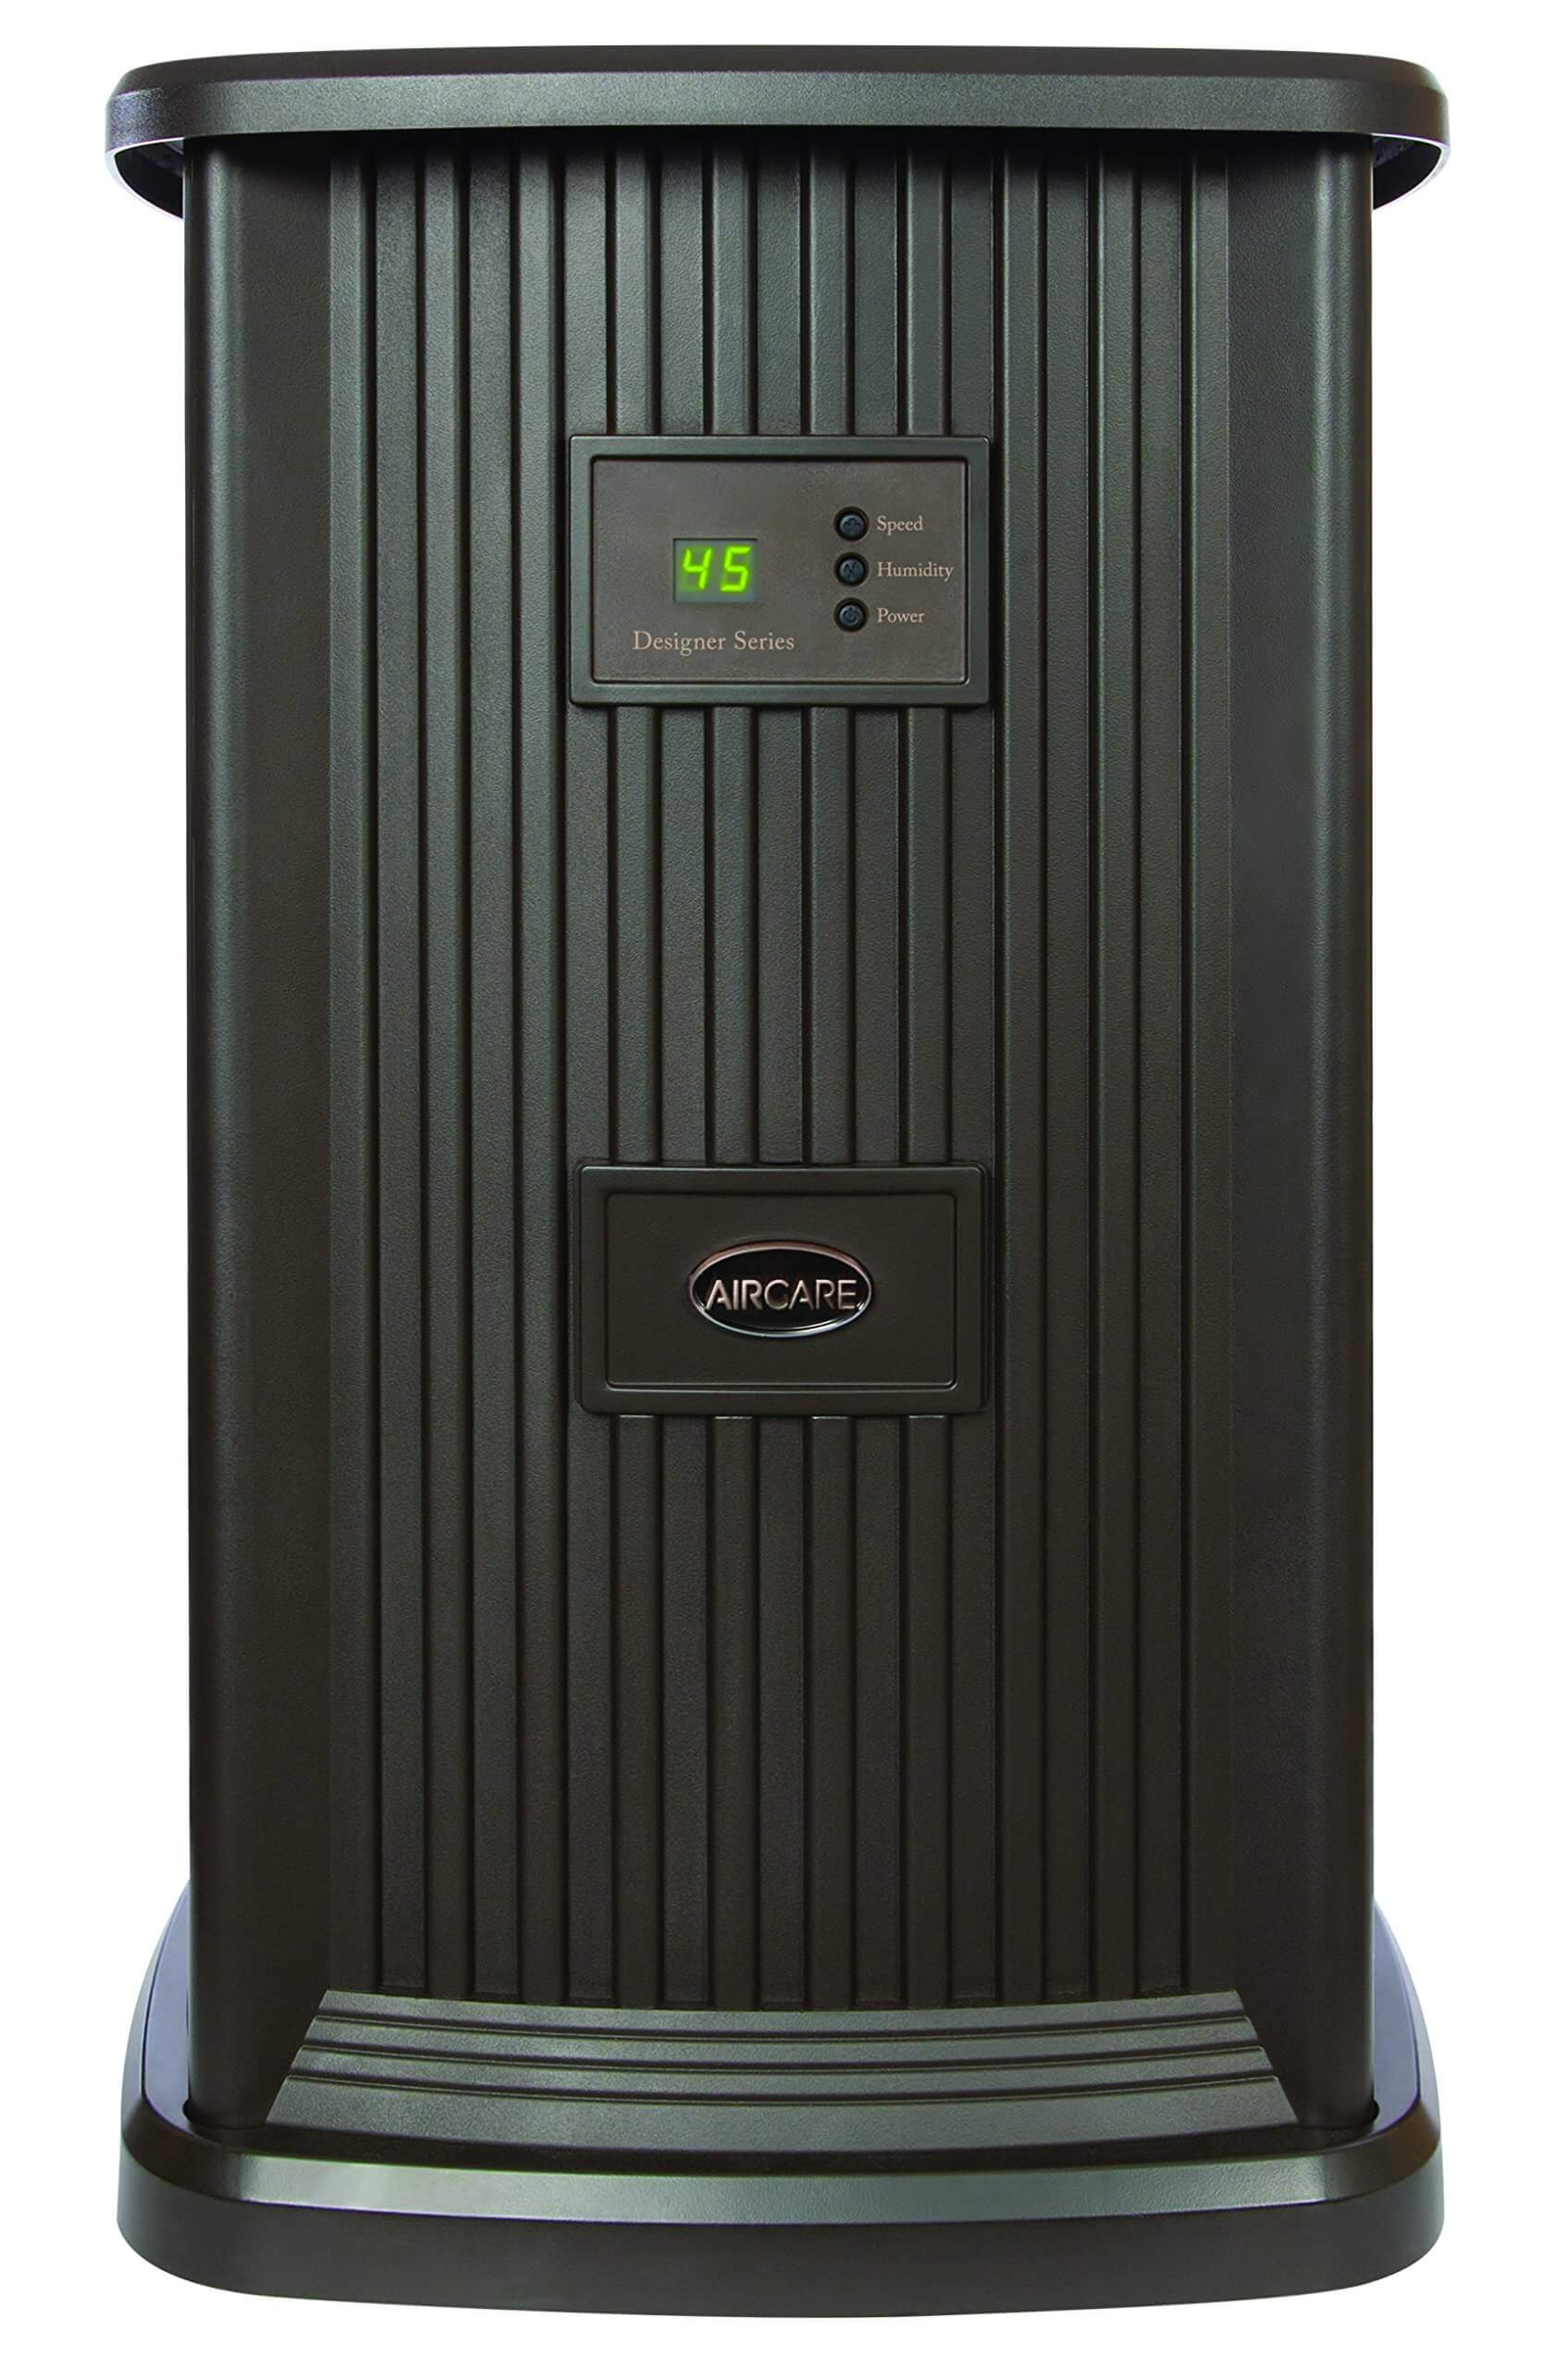 aircare humidifier ma0800 manual